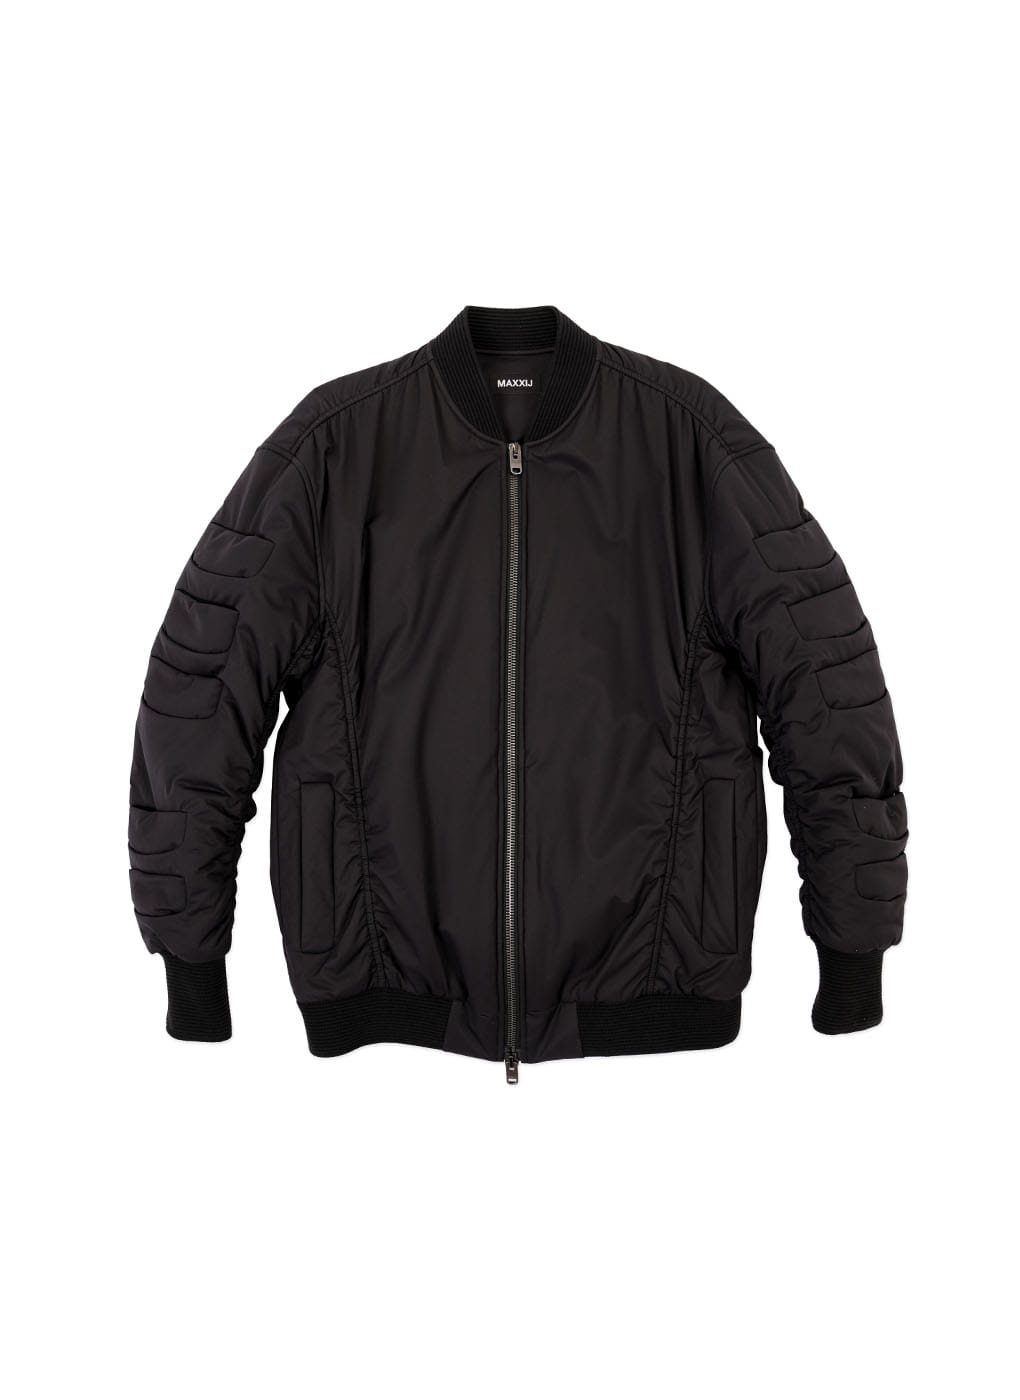 Archive Collection Bomber Jacket